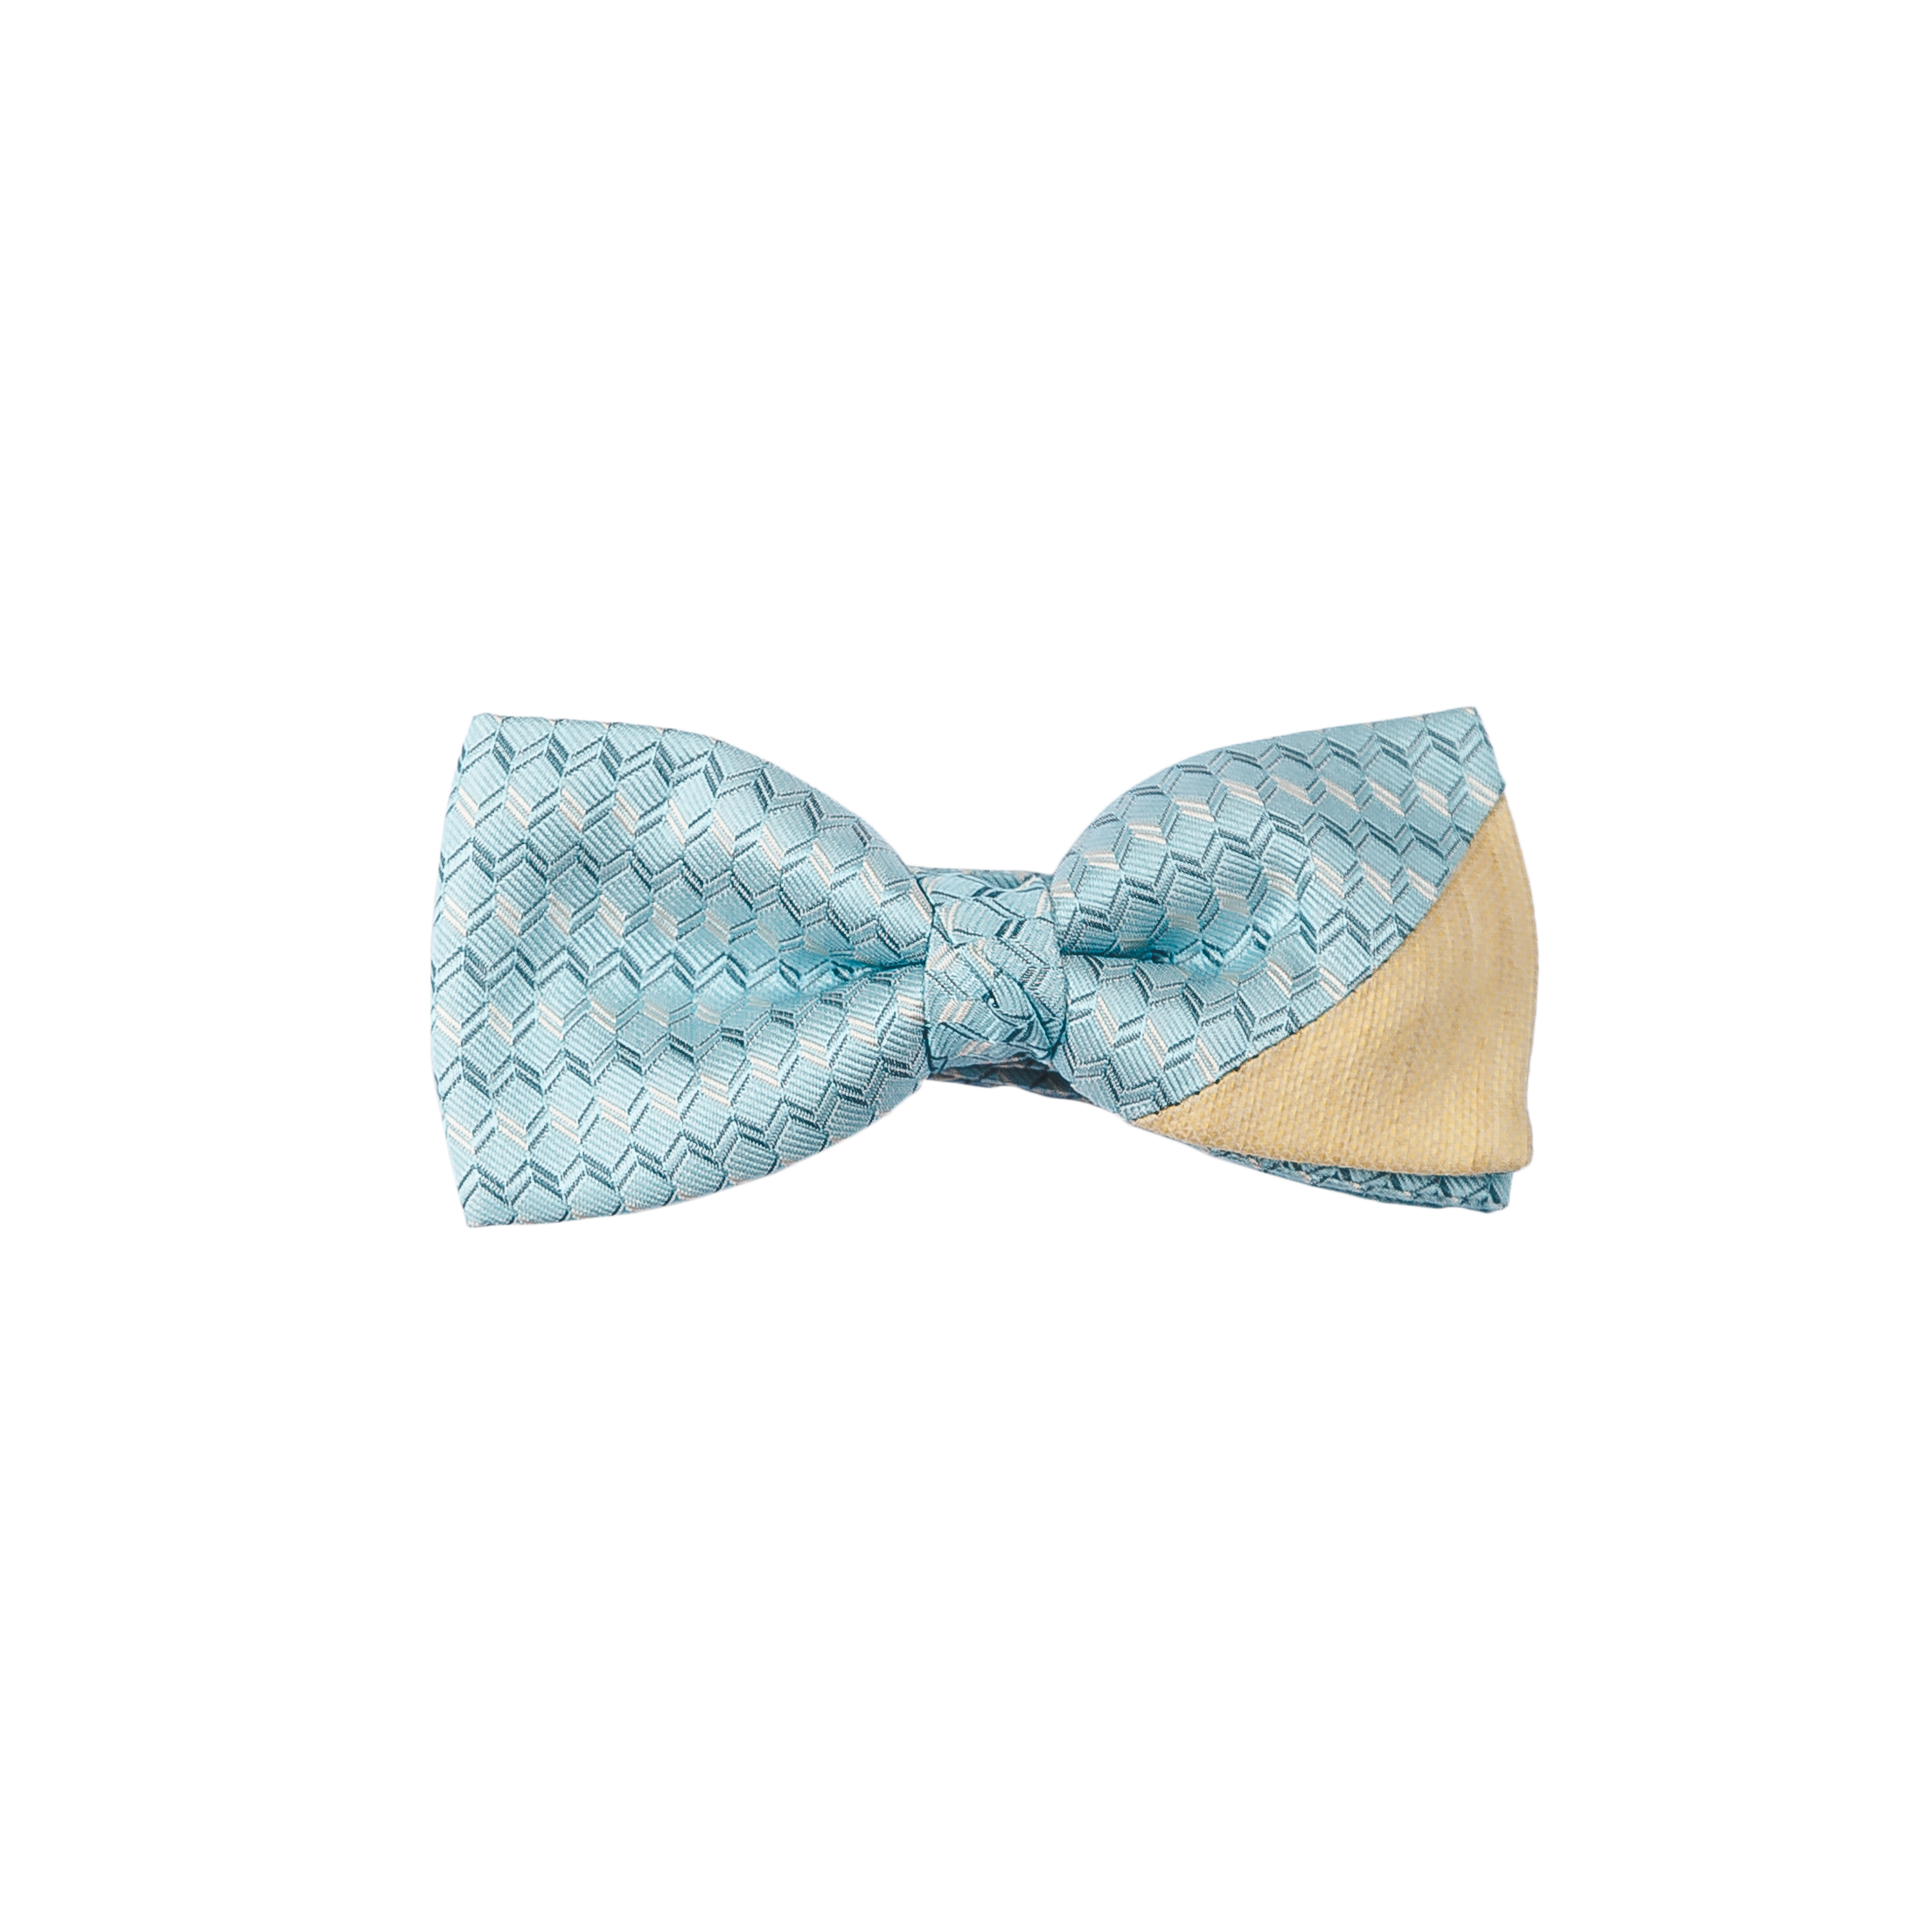 Sora means sky in Japanese and this tie just reminds us of those summer days with just a clear sky and the sun shining bright.